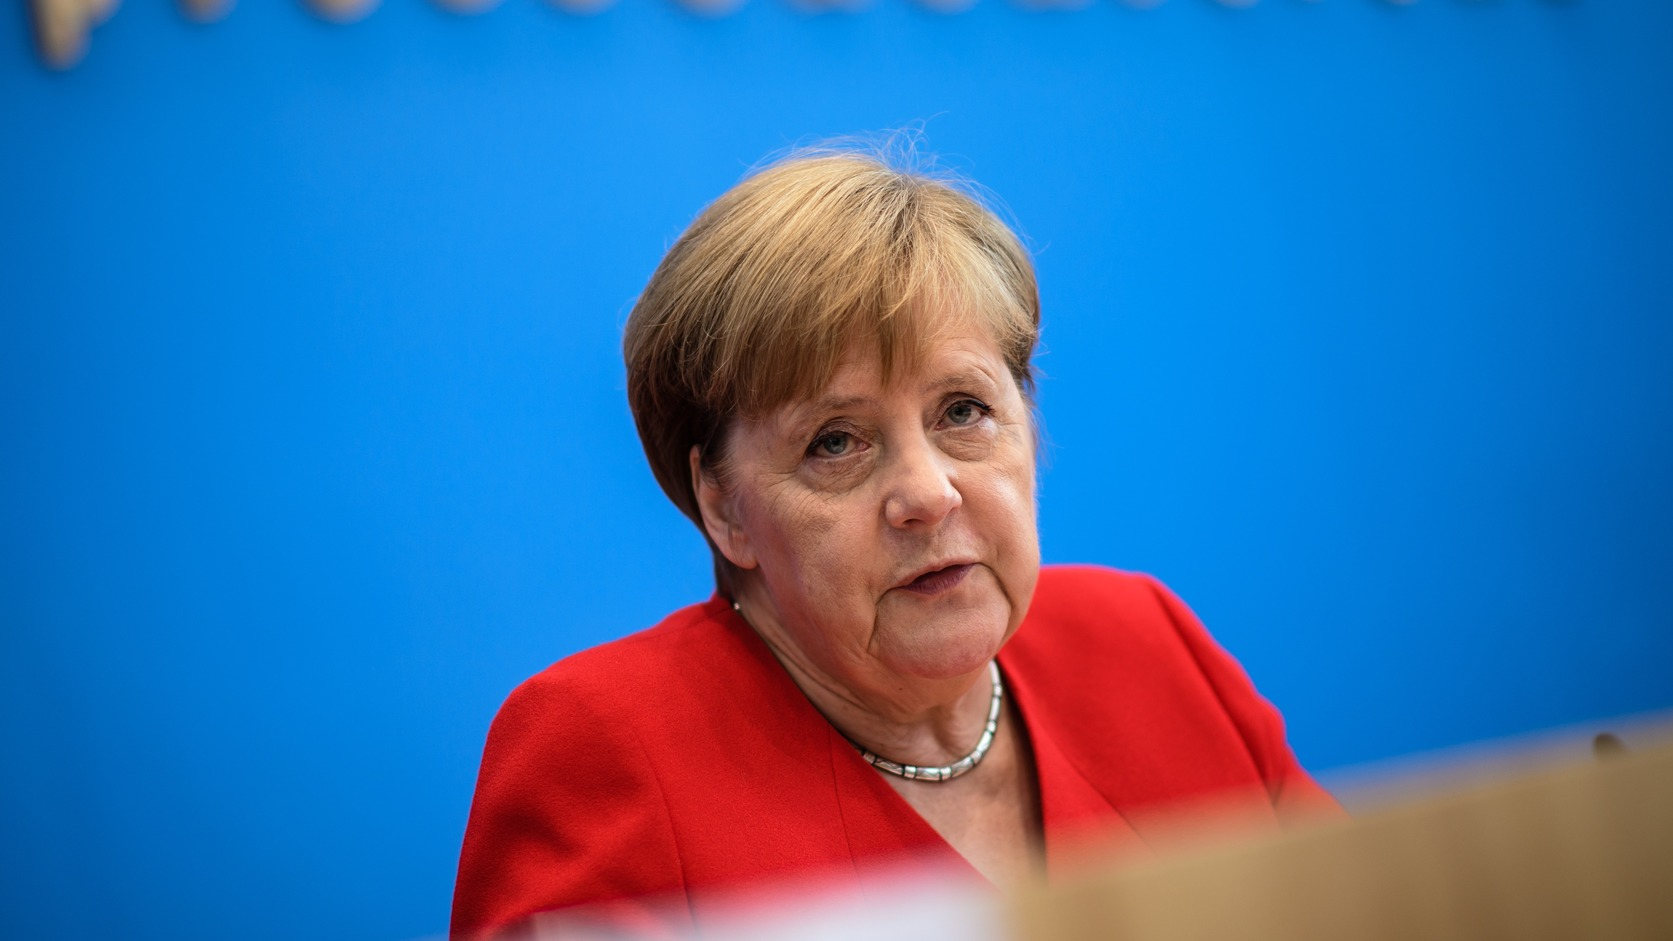 epa07726821 German Chancellor Angela Merkel gestures during her annual press conference at Bundespressekonferenz in Berlin, Germany, 19 July 2019. The traditional media briefing usually takes place during summer time.  EPA/CLEMENS BILAN